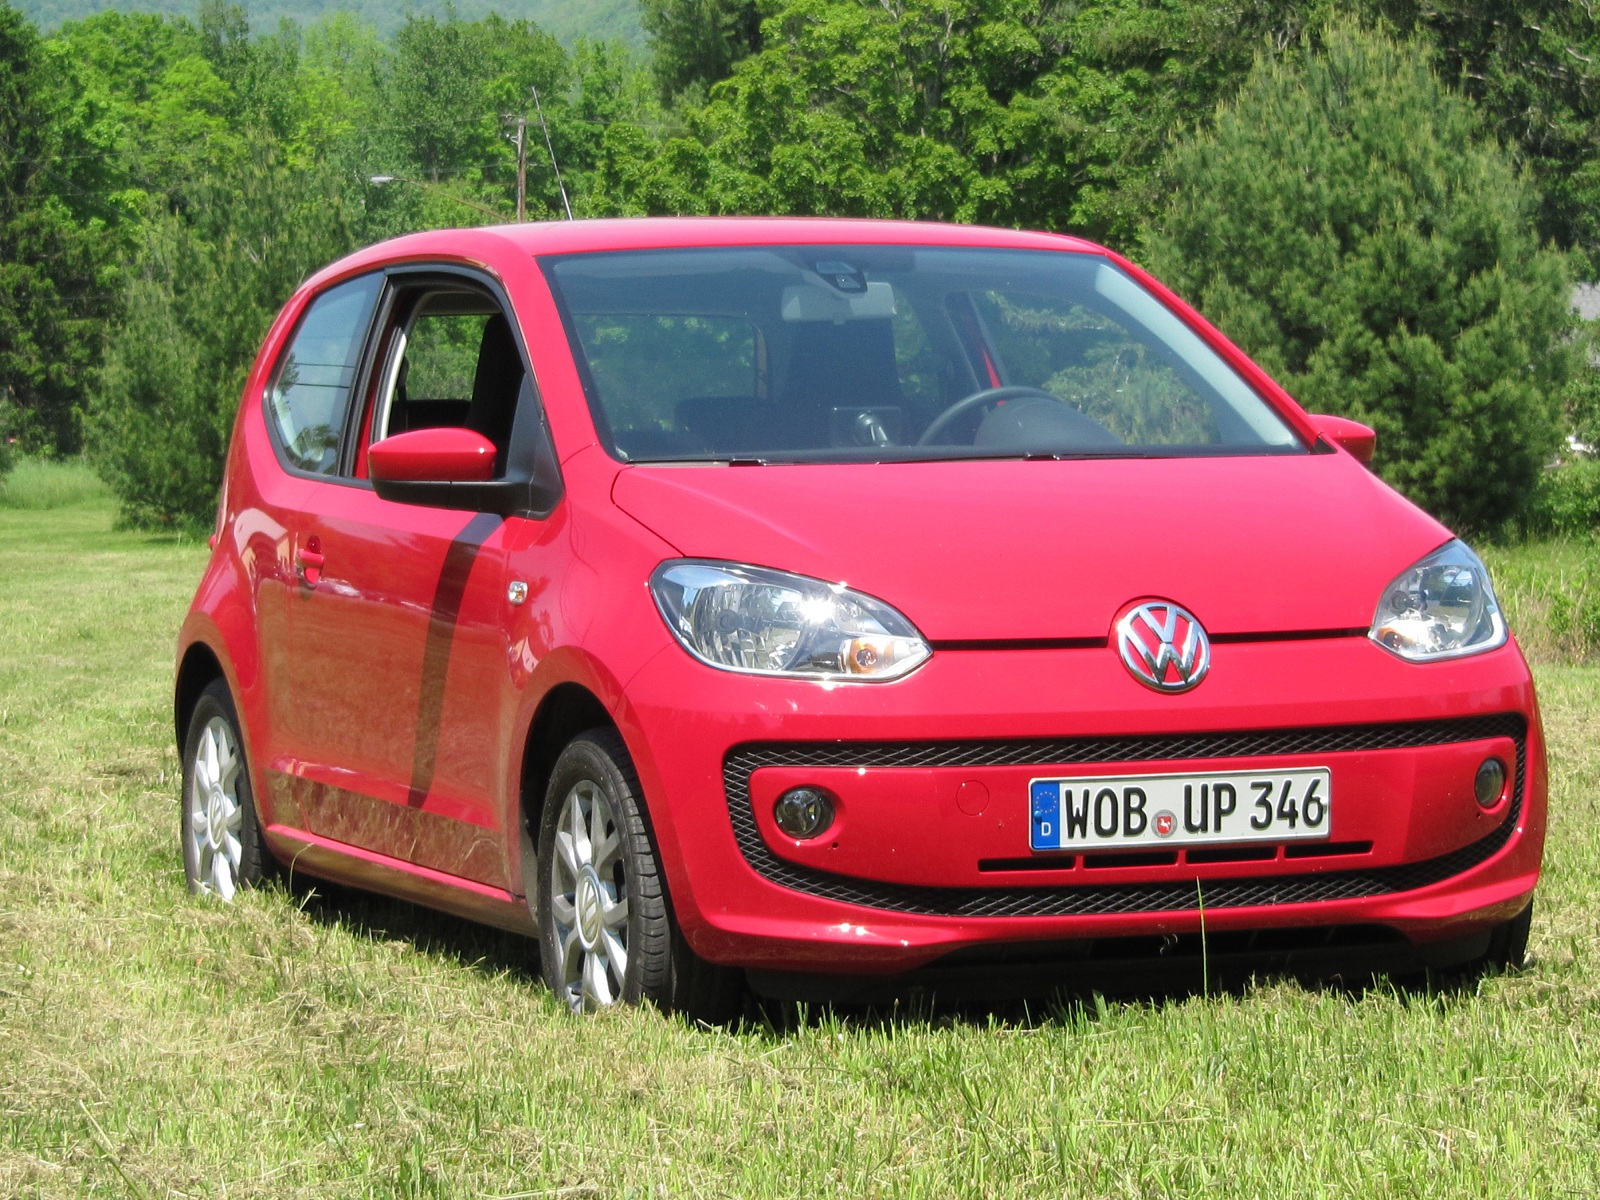 beetle image pinkbeetle the sale main newsroom vehicles article power of pink volkswagen for